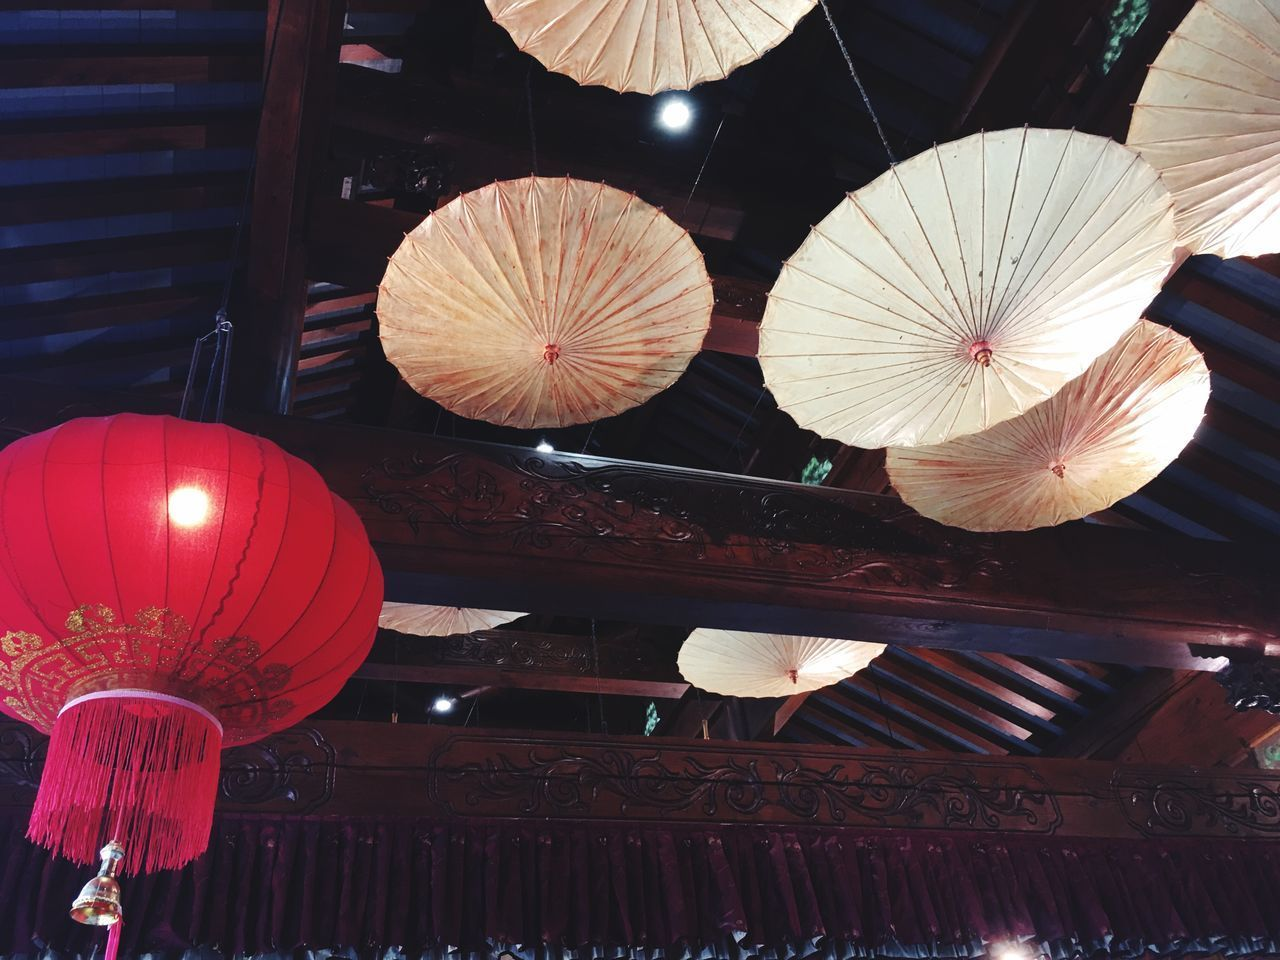 LOW ANGLE VIEW OF ILLUMINATED LANTERNS HANGING FROM ROOF